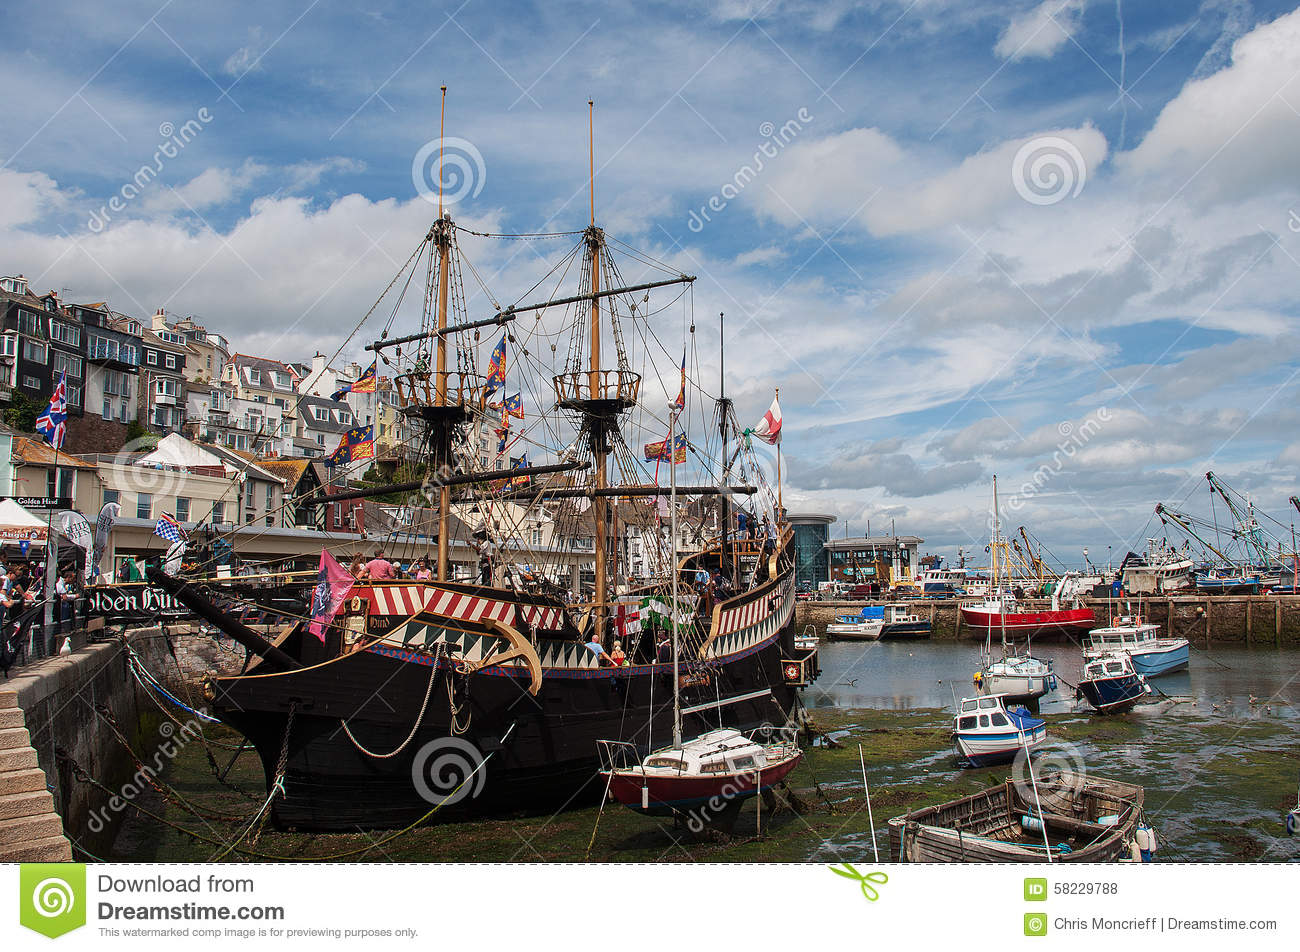 The Golden Hind In Brixham Harbour Editorial Stock Photo.